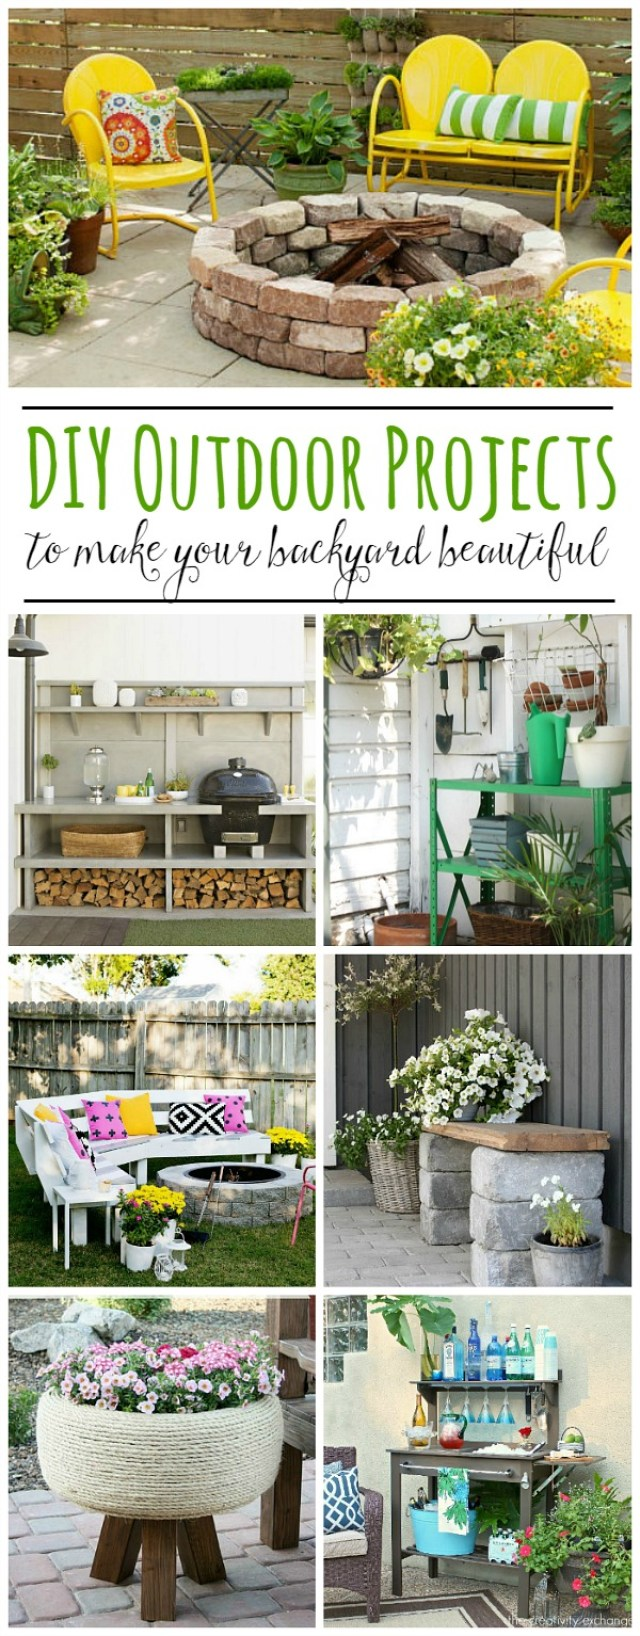 DIY-Outdoor-Projects2